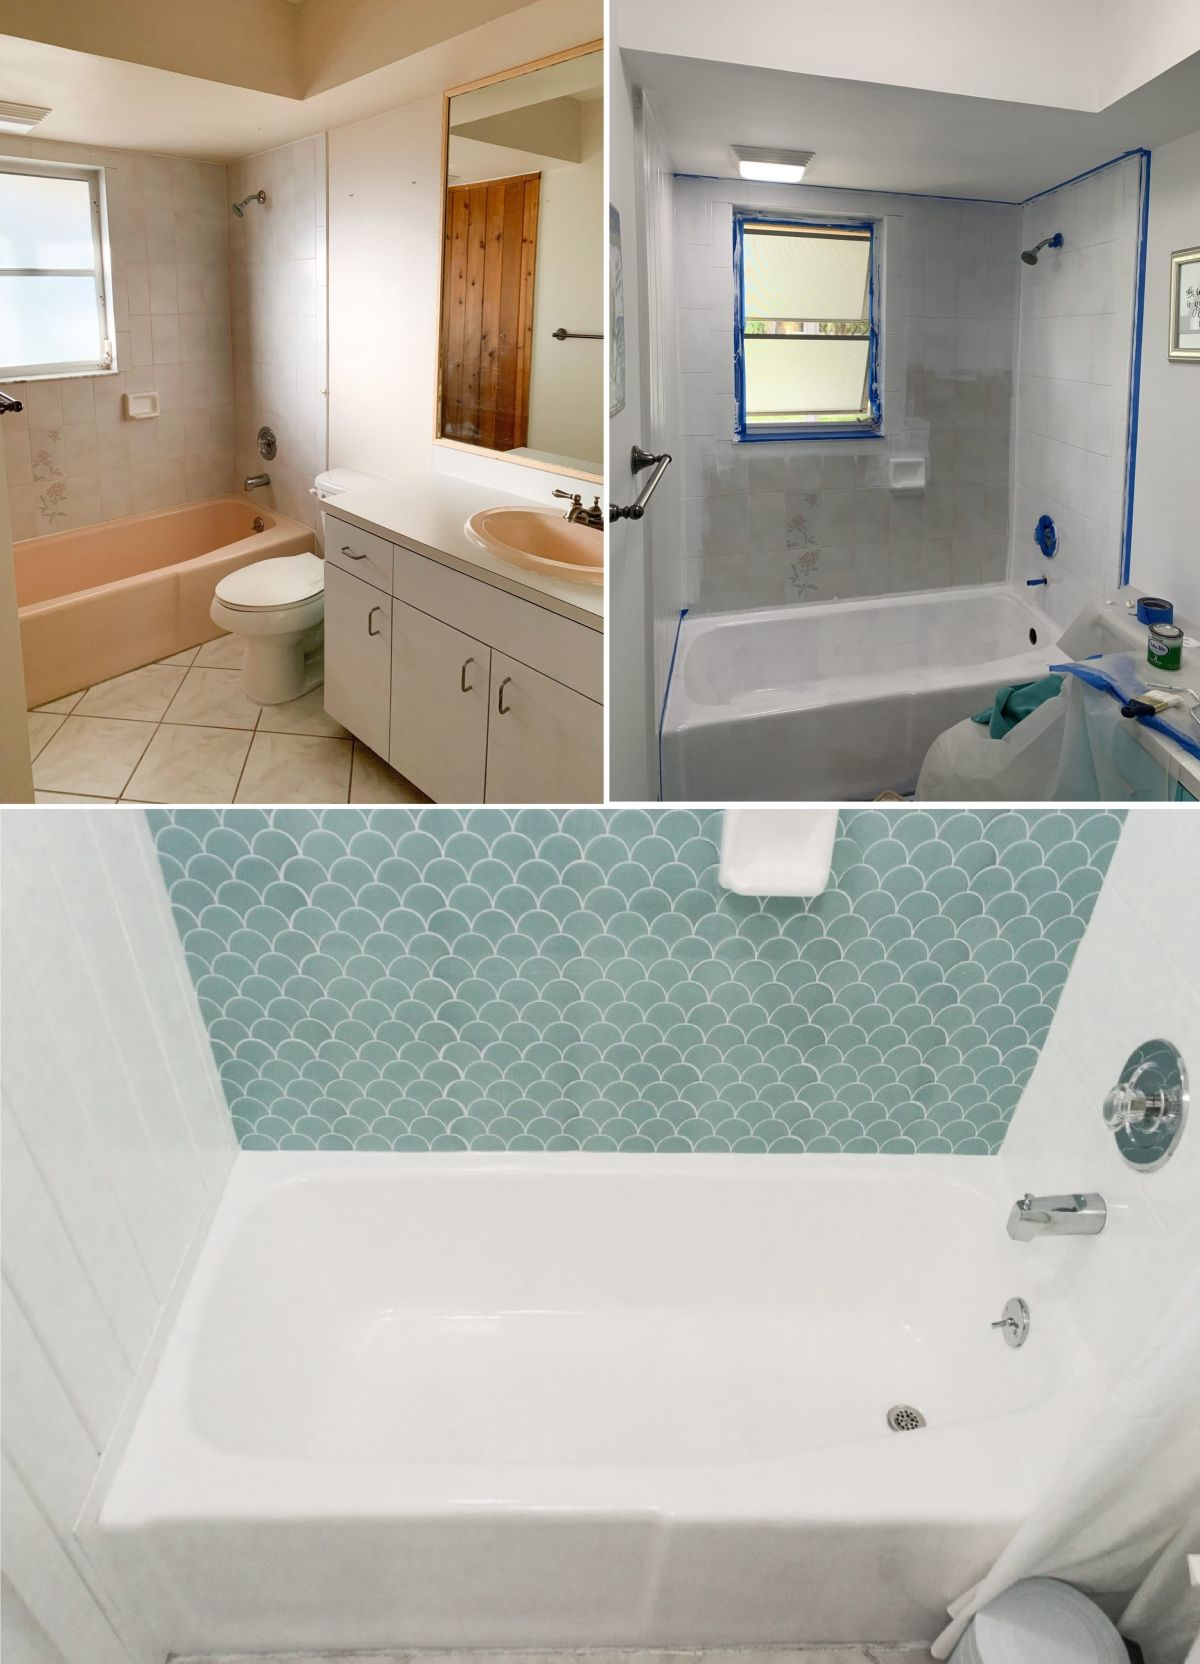 The Bathtub Refinishing Project What It Takes And How To Do It